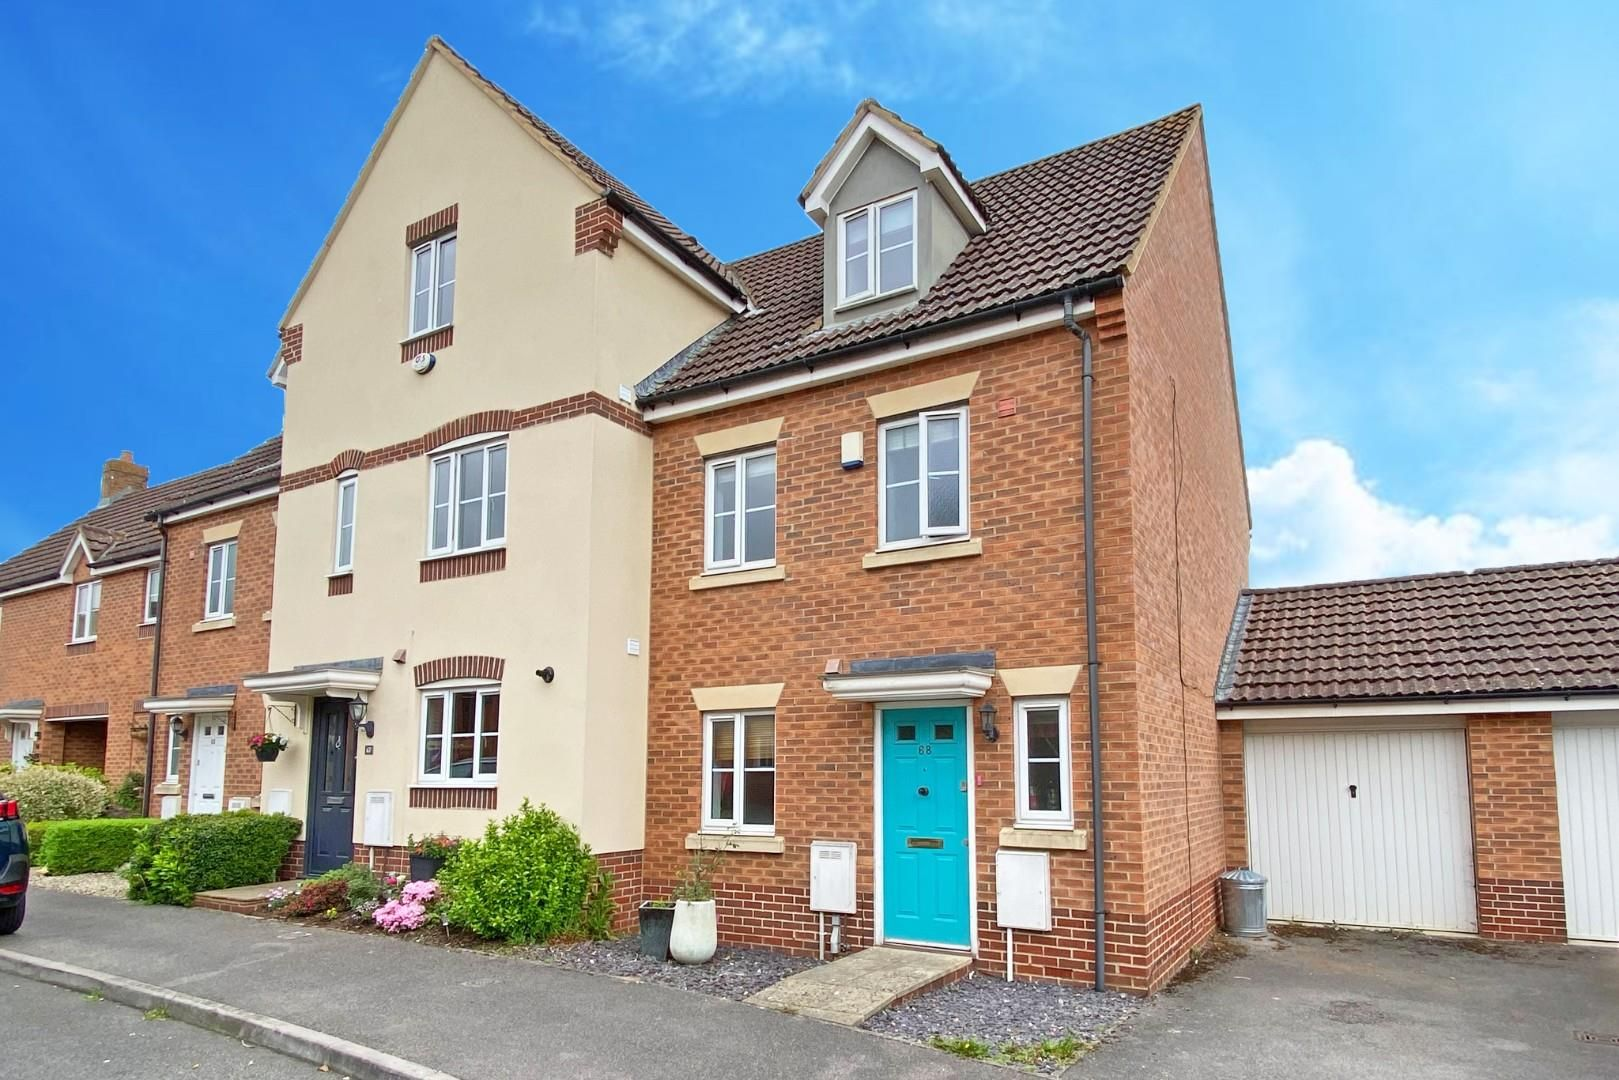 3 bed end of terrace to rent in Shinfield, RG2